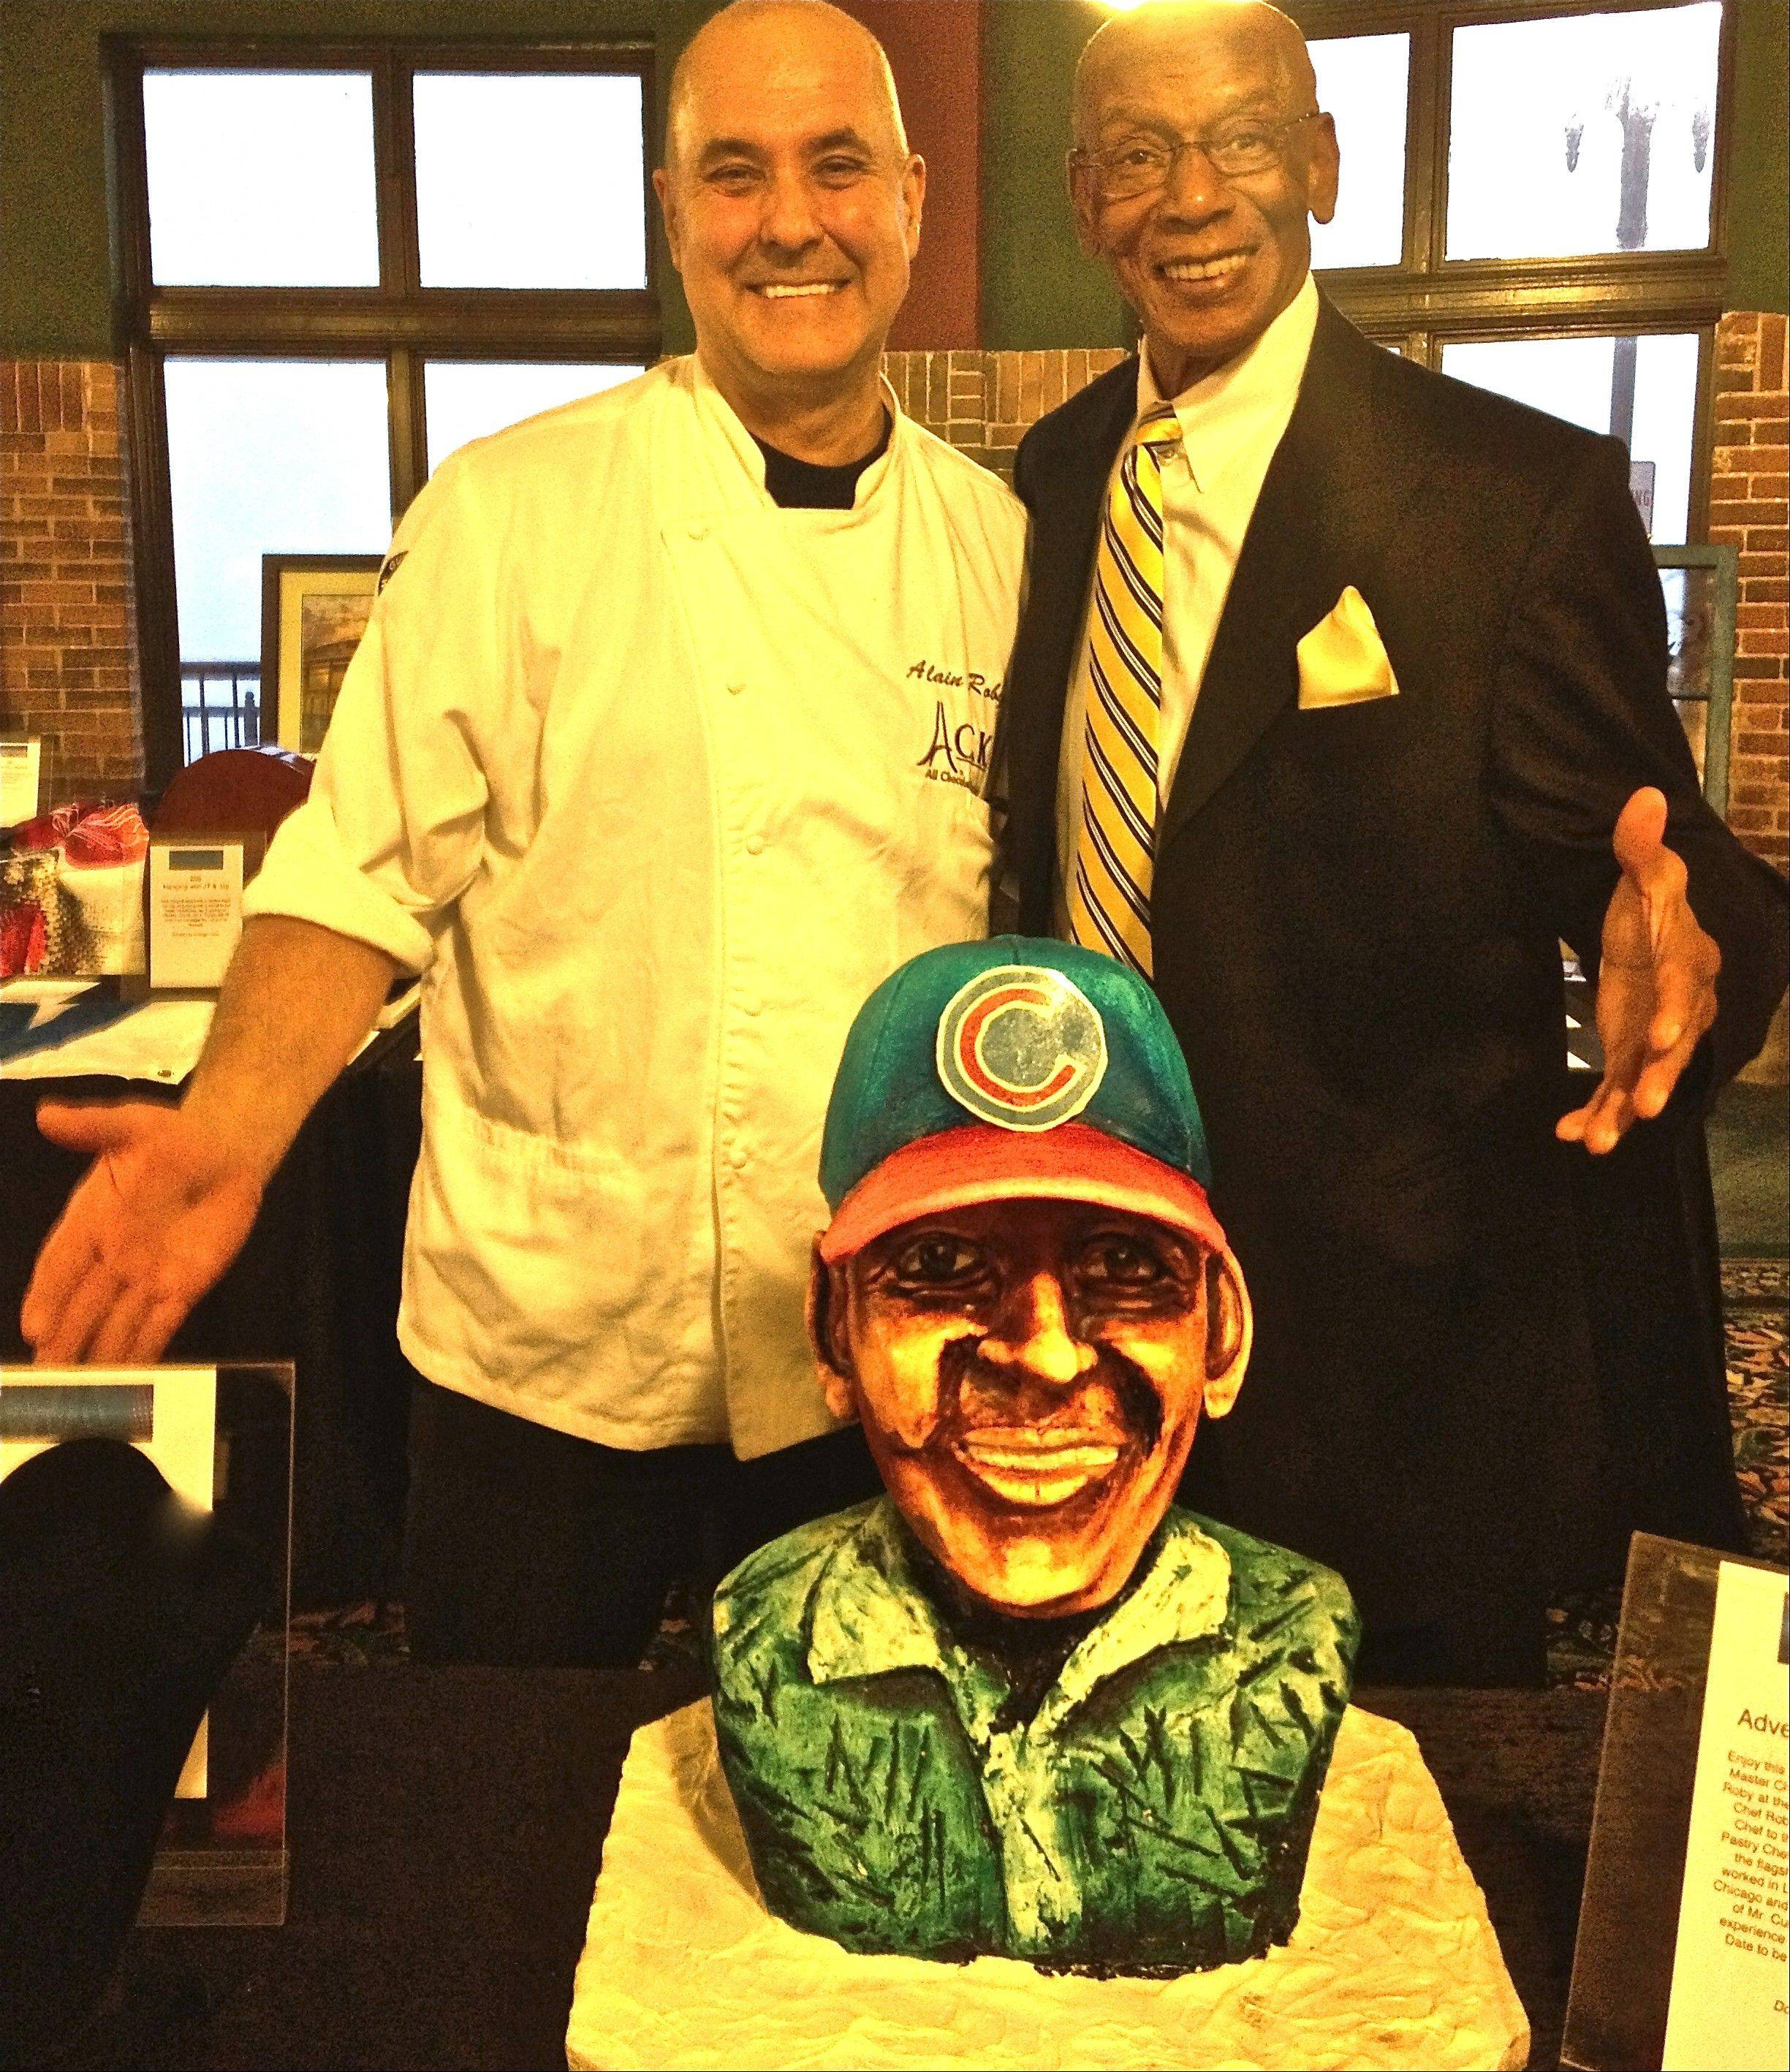 Chef Alain Roby, left, and Cub legend Ernie Banks pose in front of a bust created from chocolate to benefit the Cubs Charities.